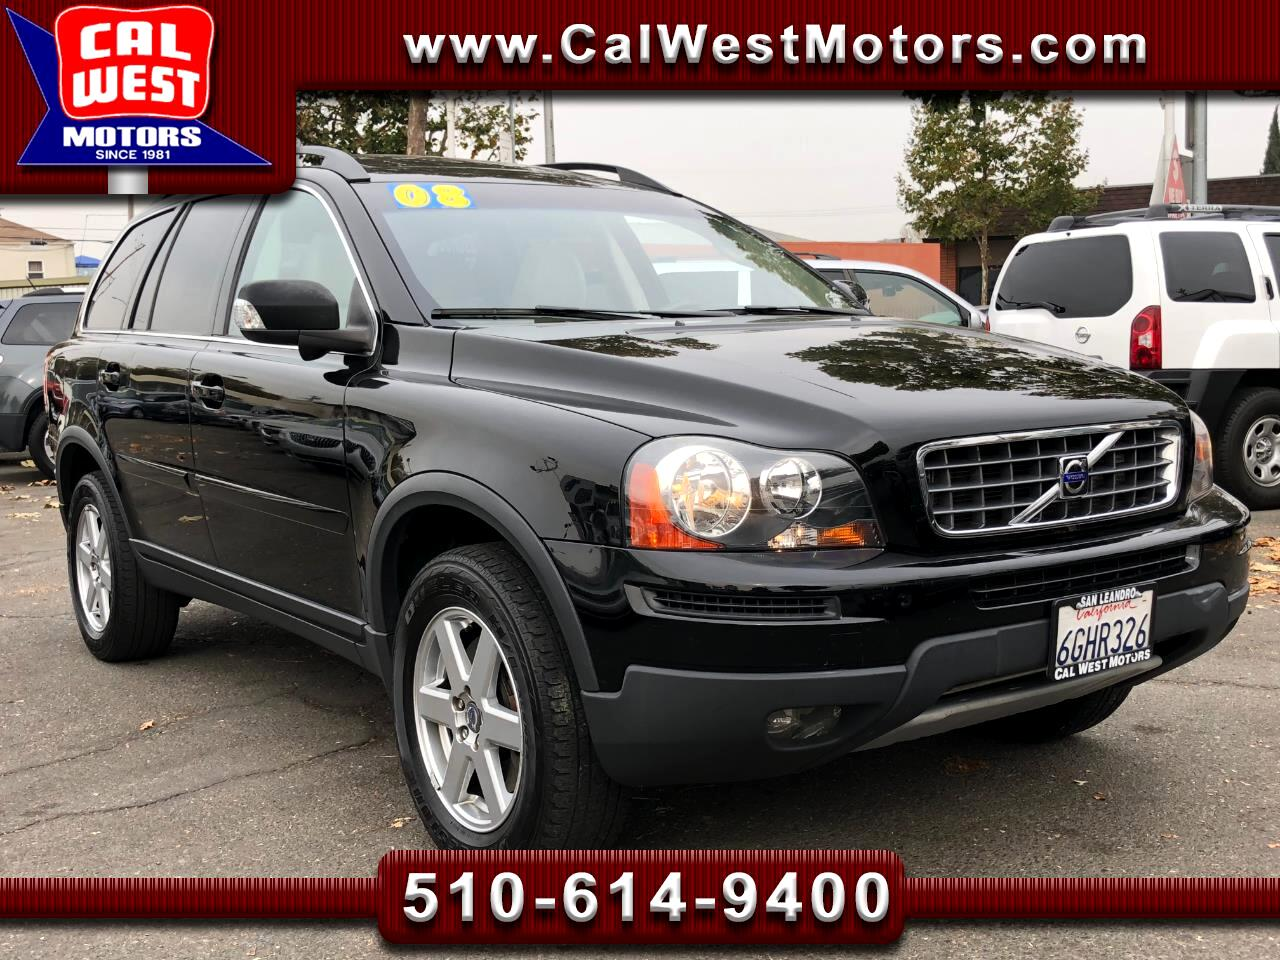 2008 Volvo XC90 3.2 SUV 5D 3Rows Leathr VeryClean GreatMtnce